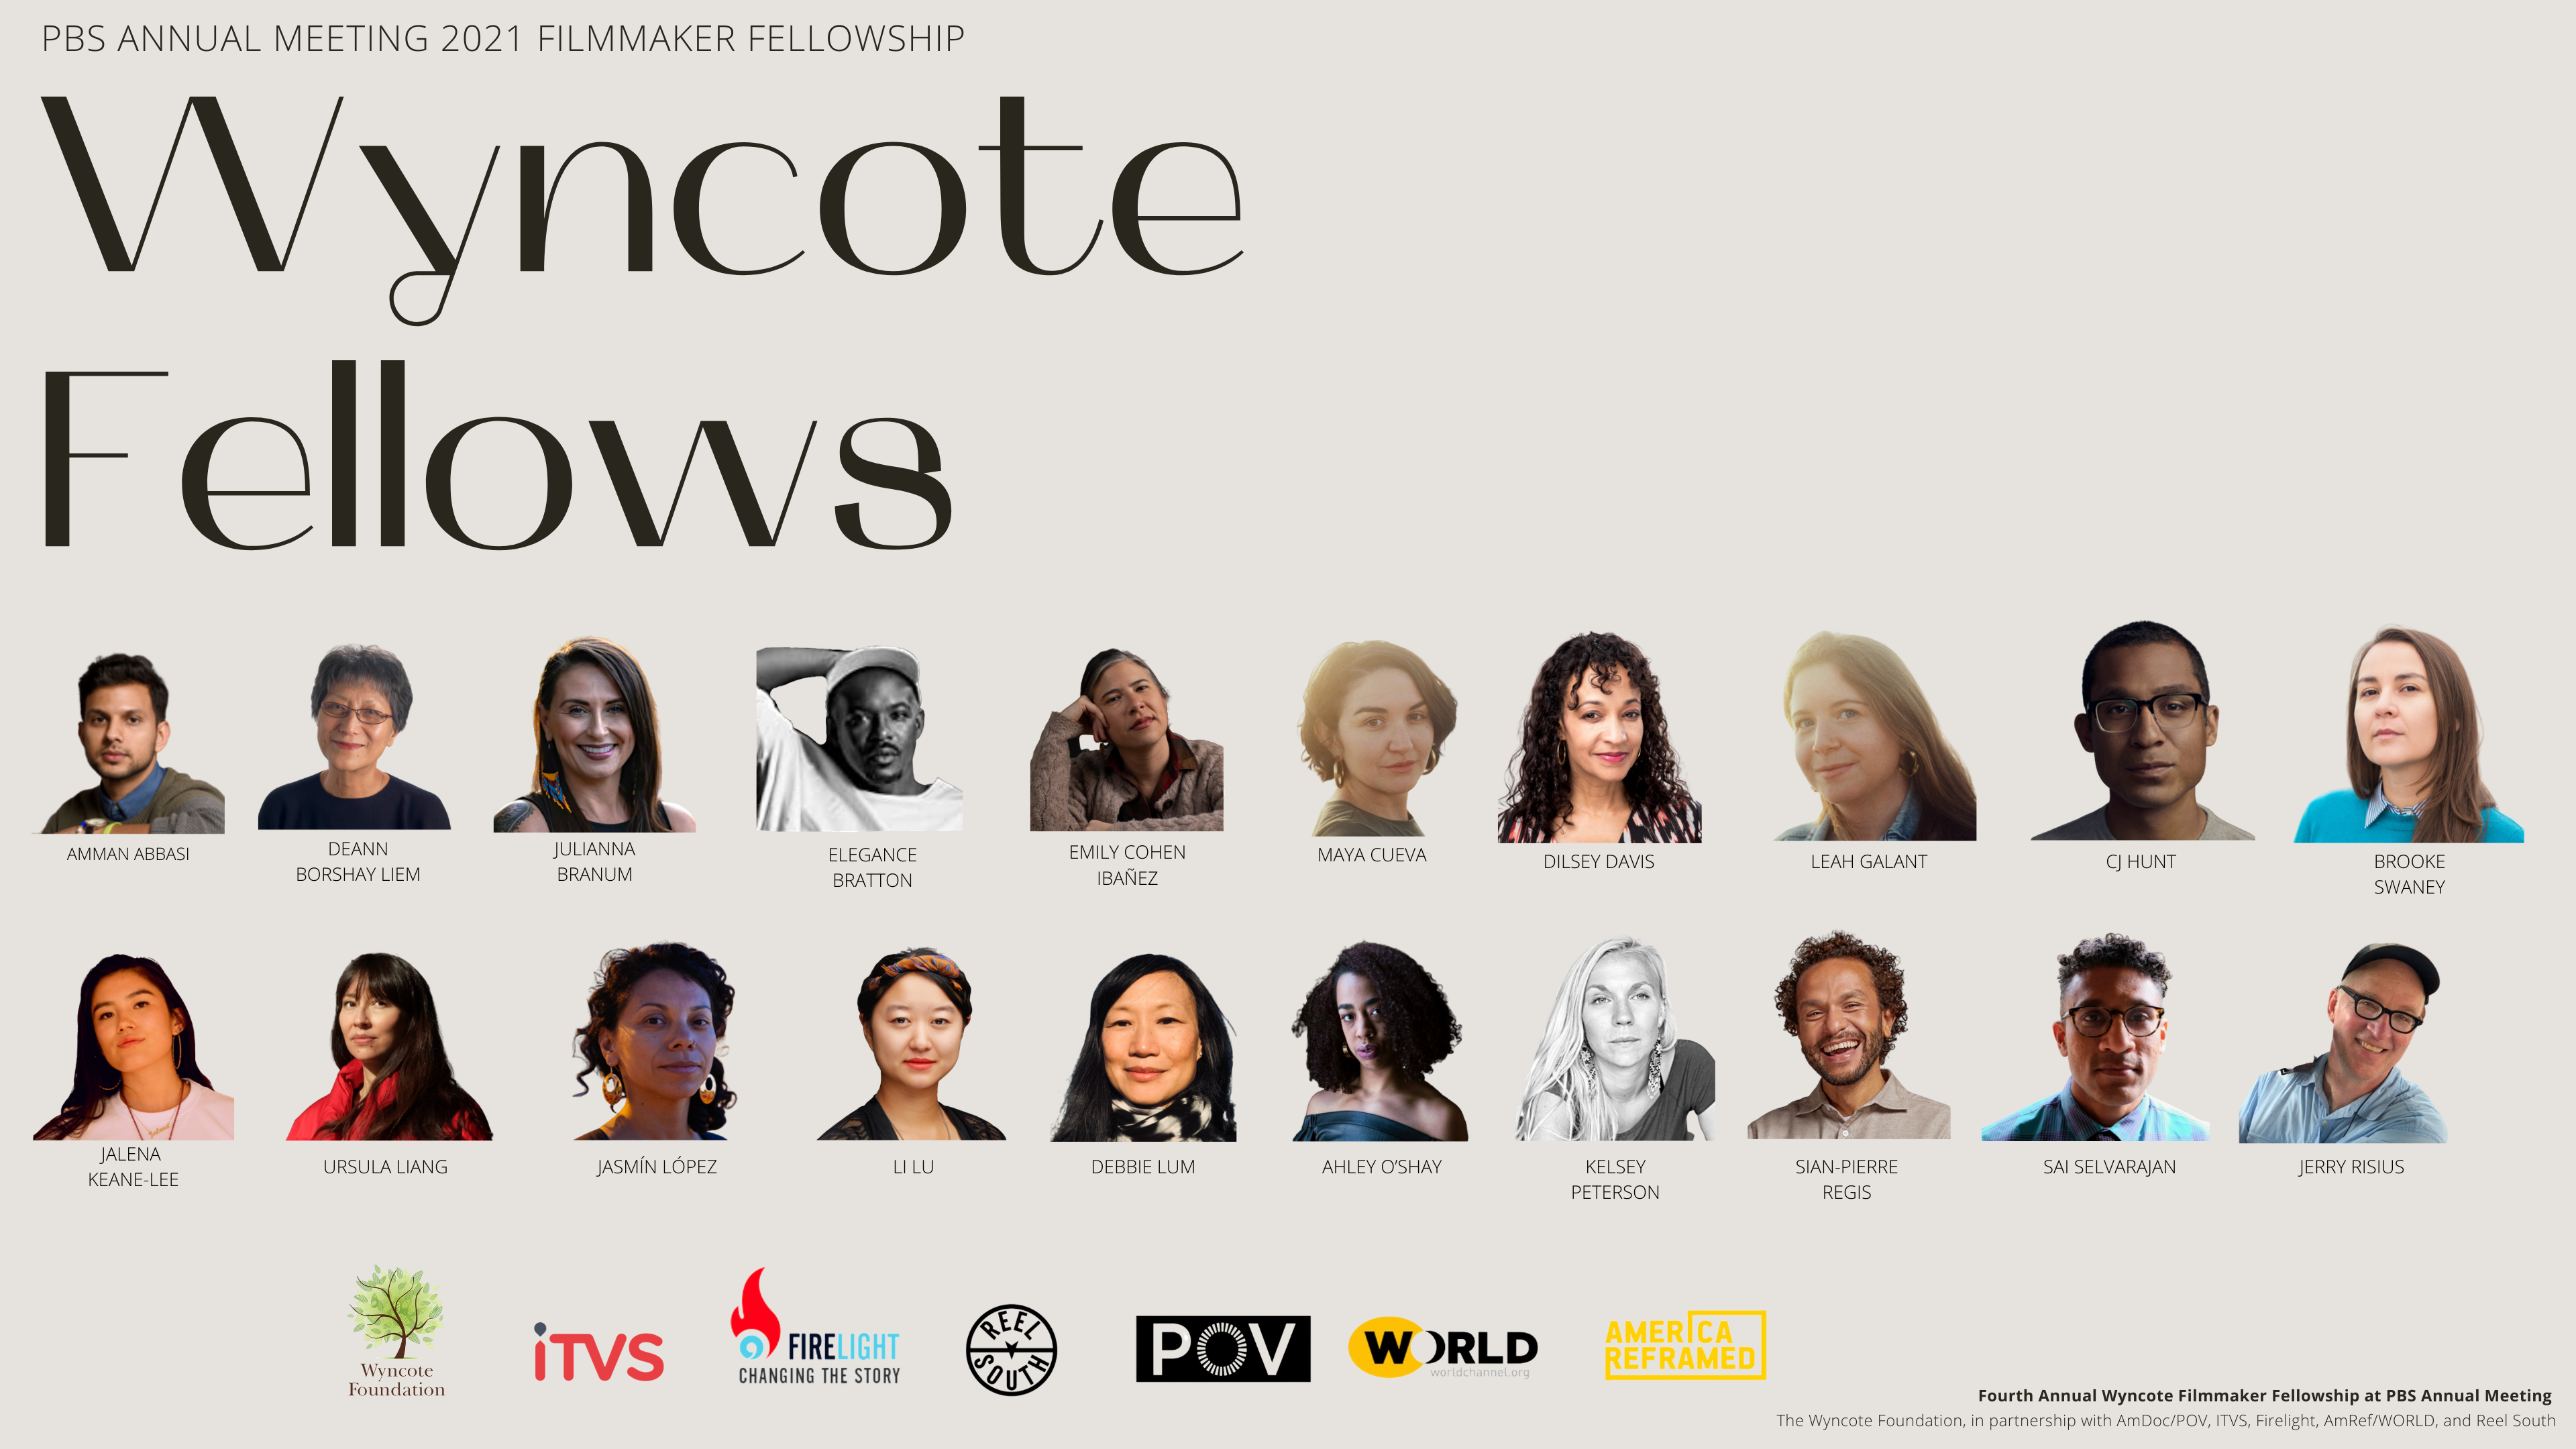 POV and America ReFramed Filmmakers Selected for 2021 Wyncote Fellowship at PBS Annual Meeting